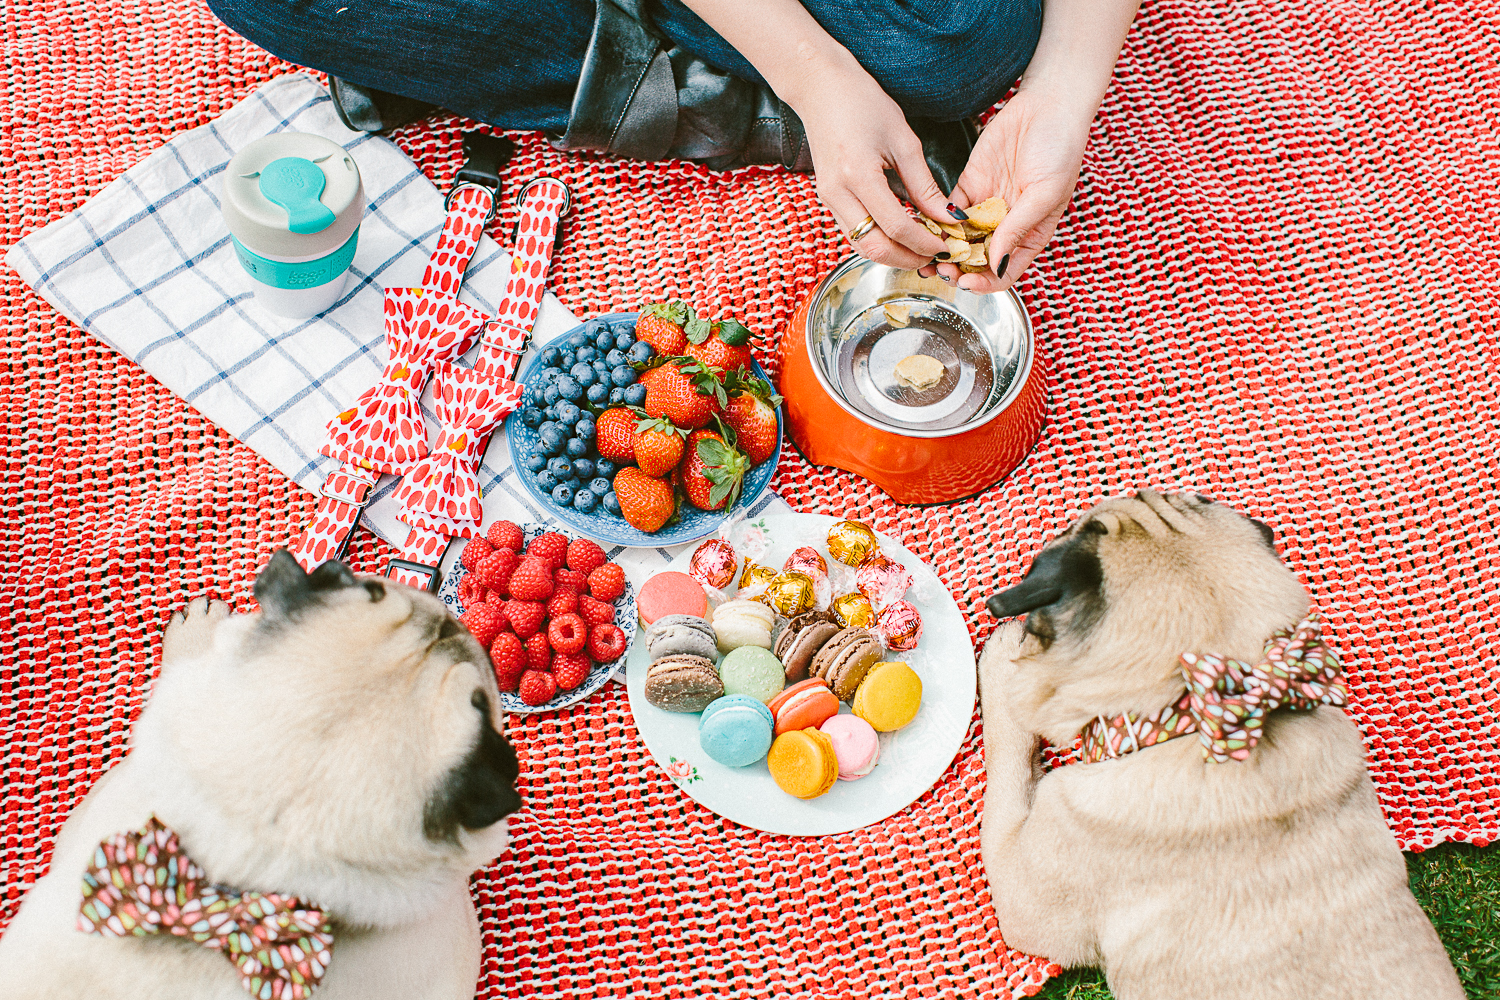 twoguineapigs_pet_photography_oh_jaffa_picnic_pugs_1500-14.jpg